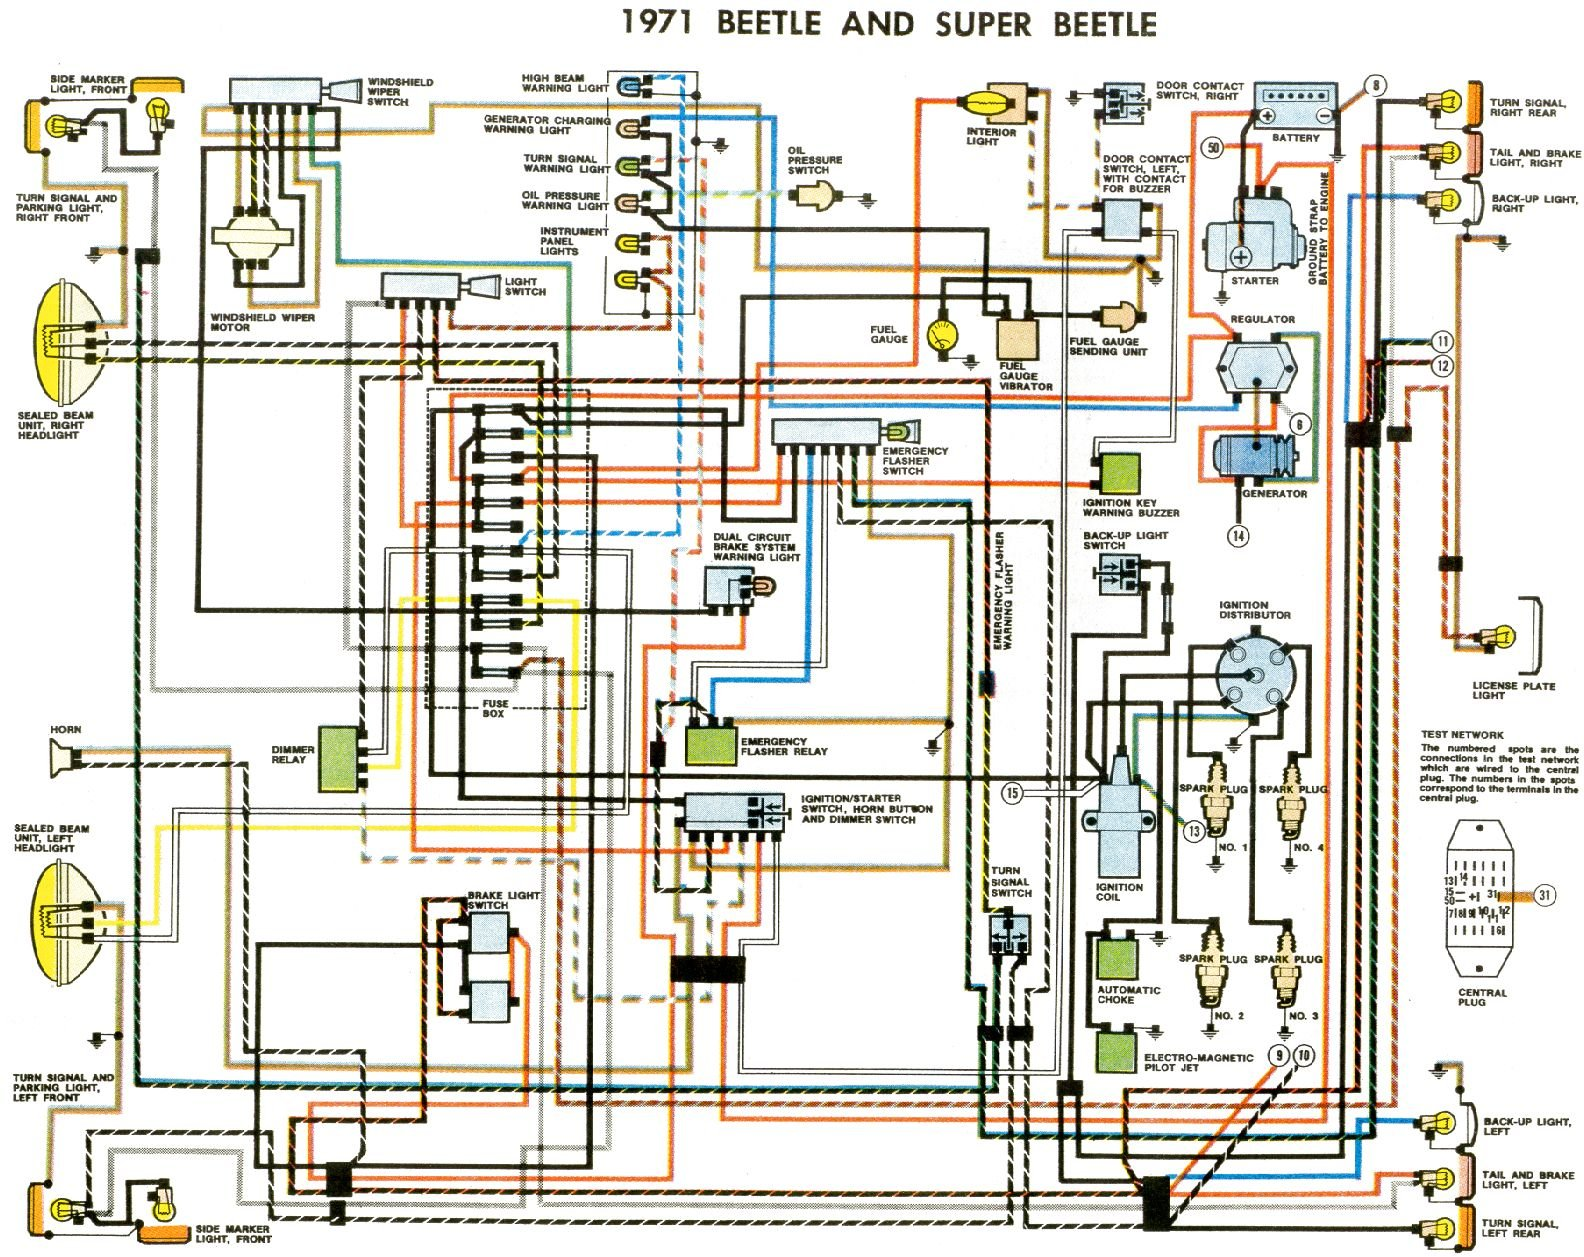 stereo wiring diagram for 2001 vw beetle wiring diagram for 2002 vw beetle #7